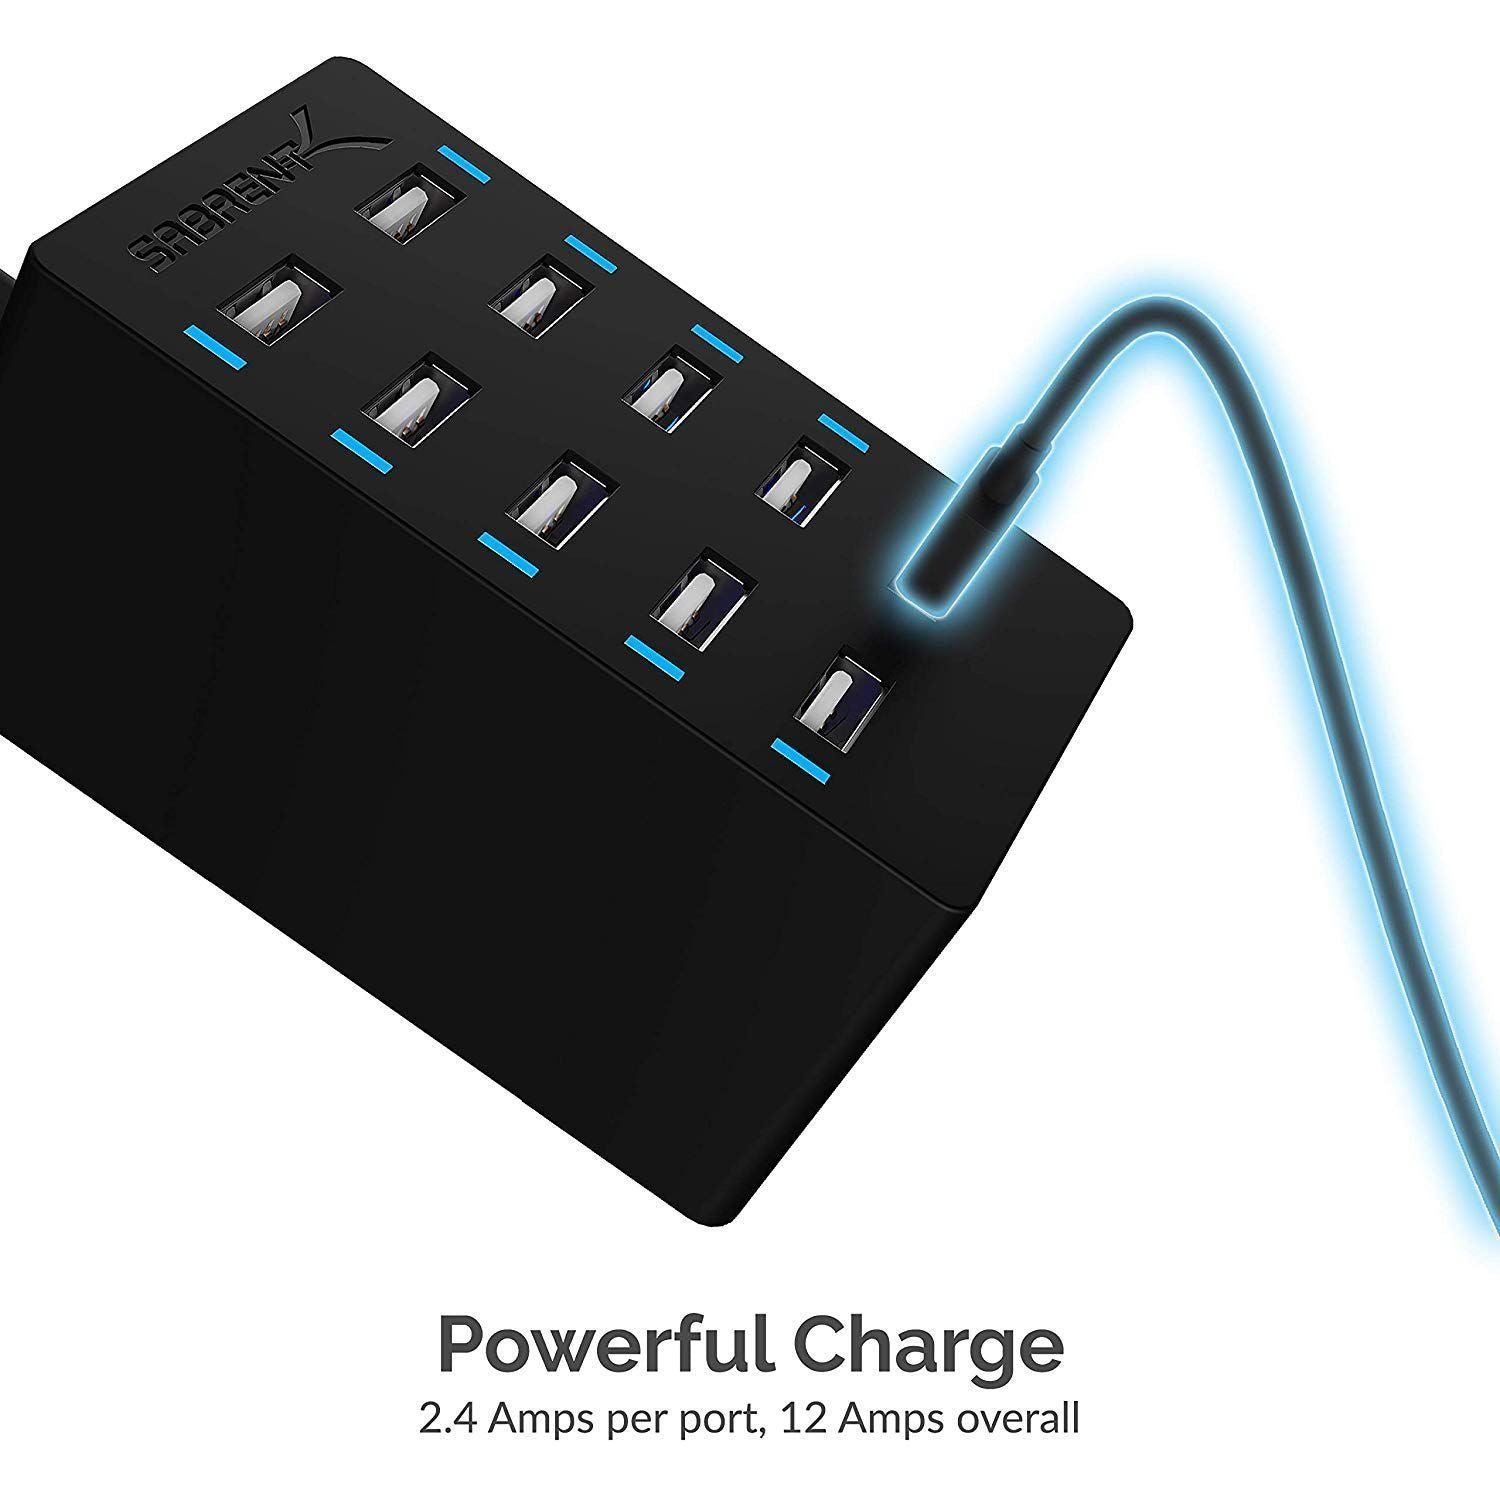 Sabrent 60 Watt 10-Port Family-Sized Desktop USB Rapid Charger. Smart USB Ports with Auto Detect Technology